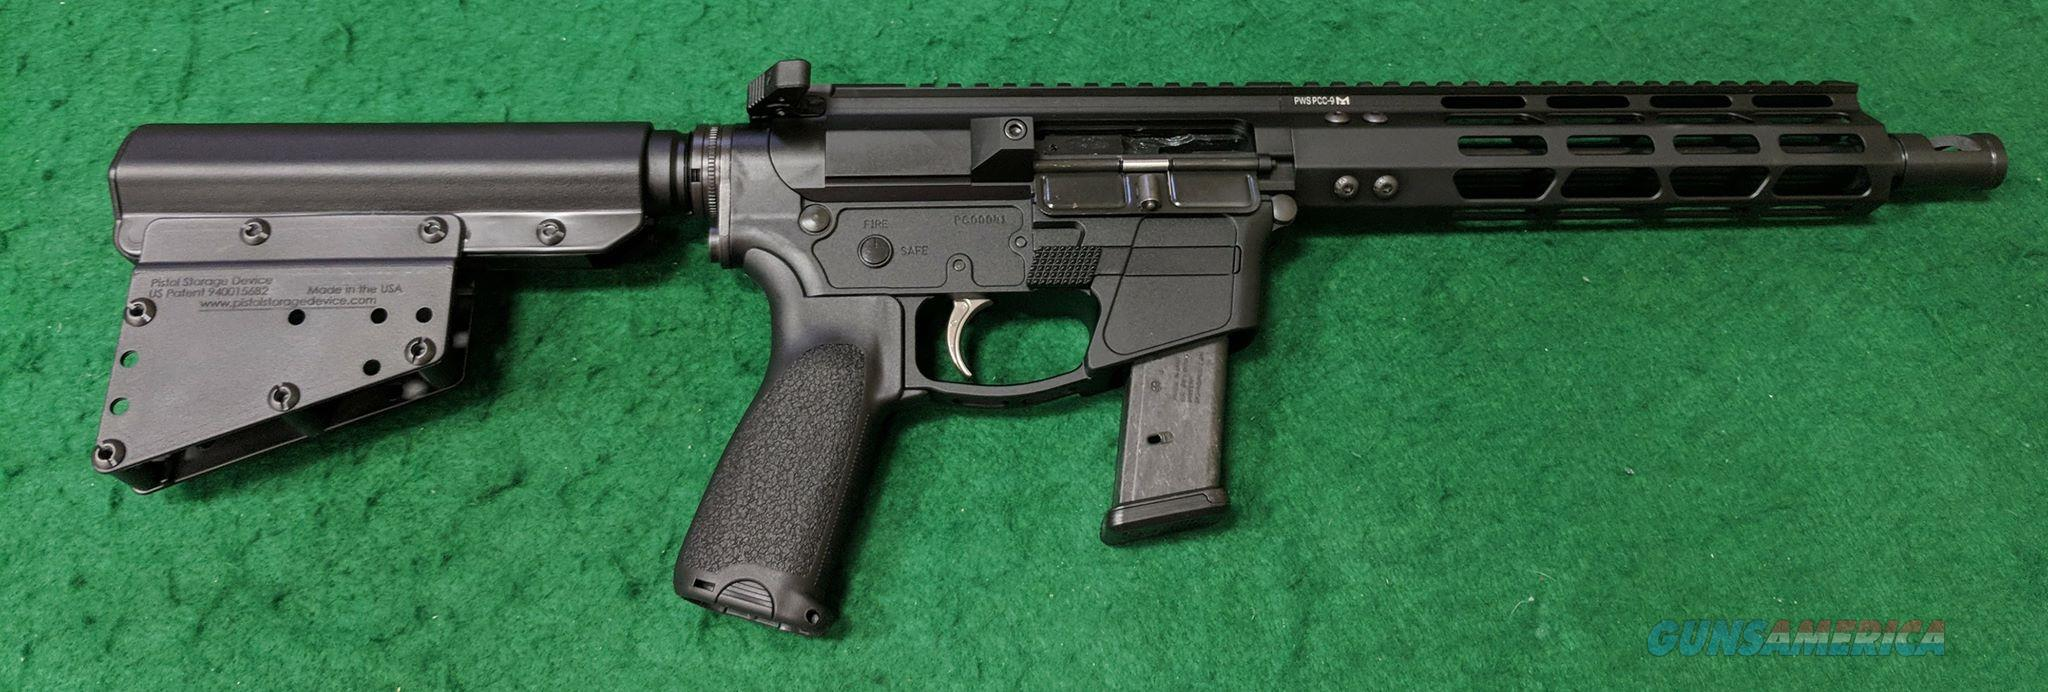 Primary Weapons System - PCC 9mm Pistol 9 5